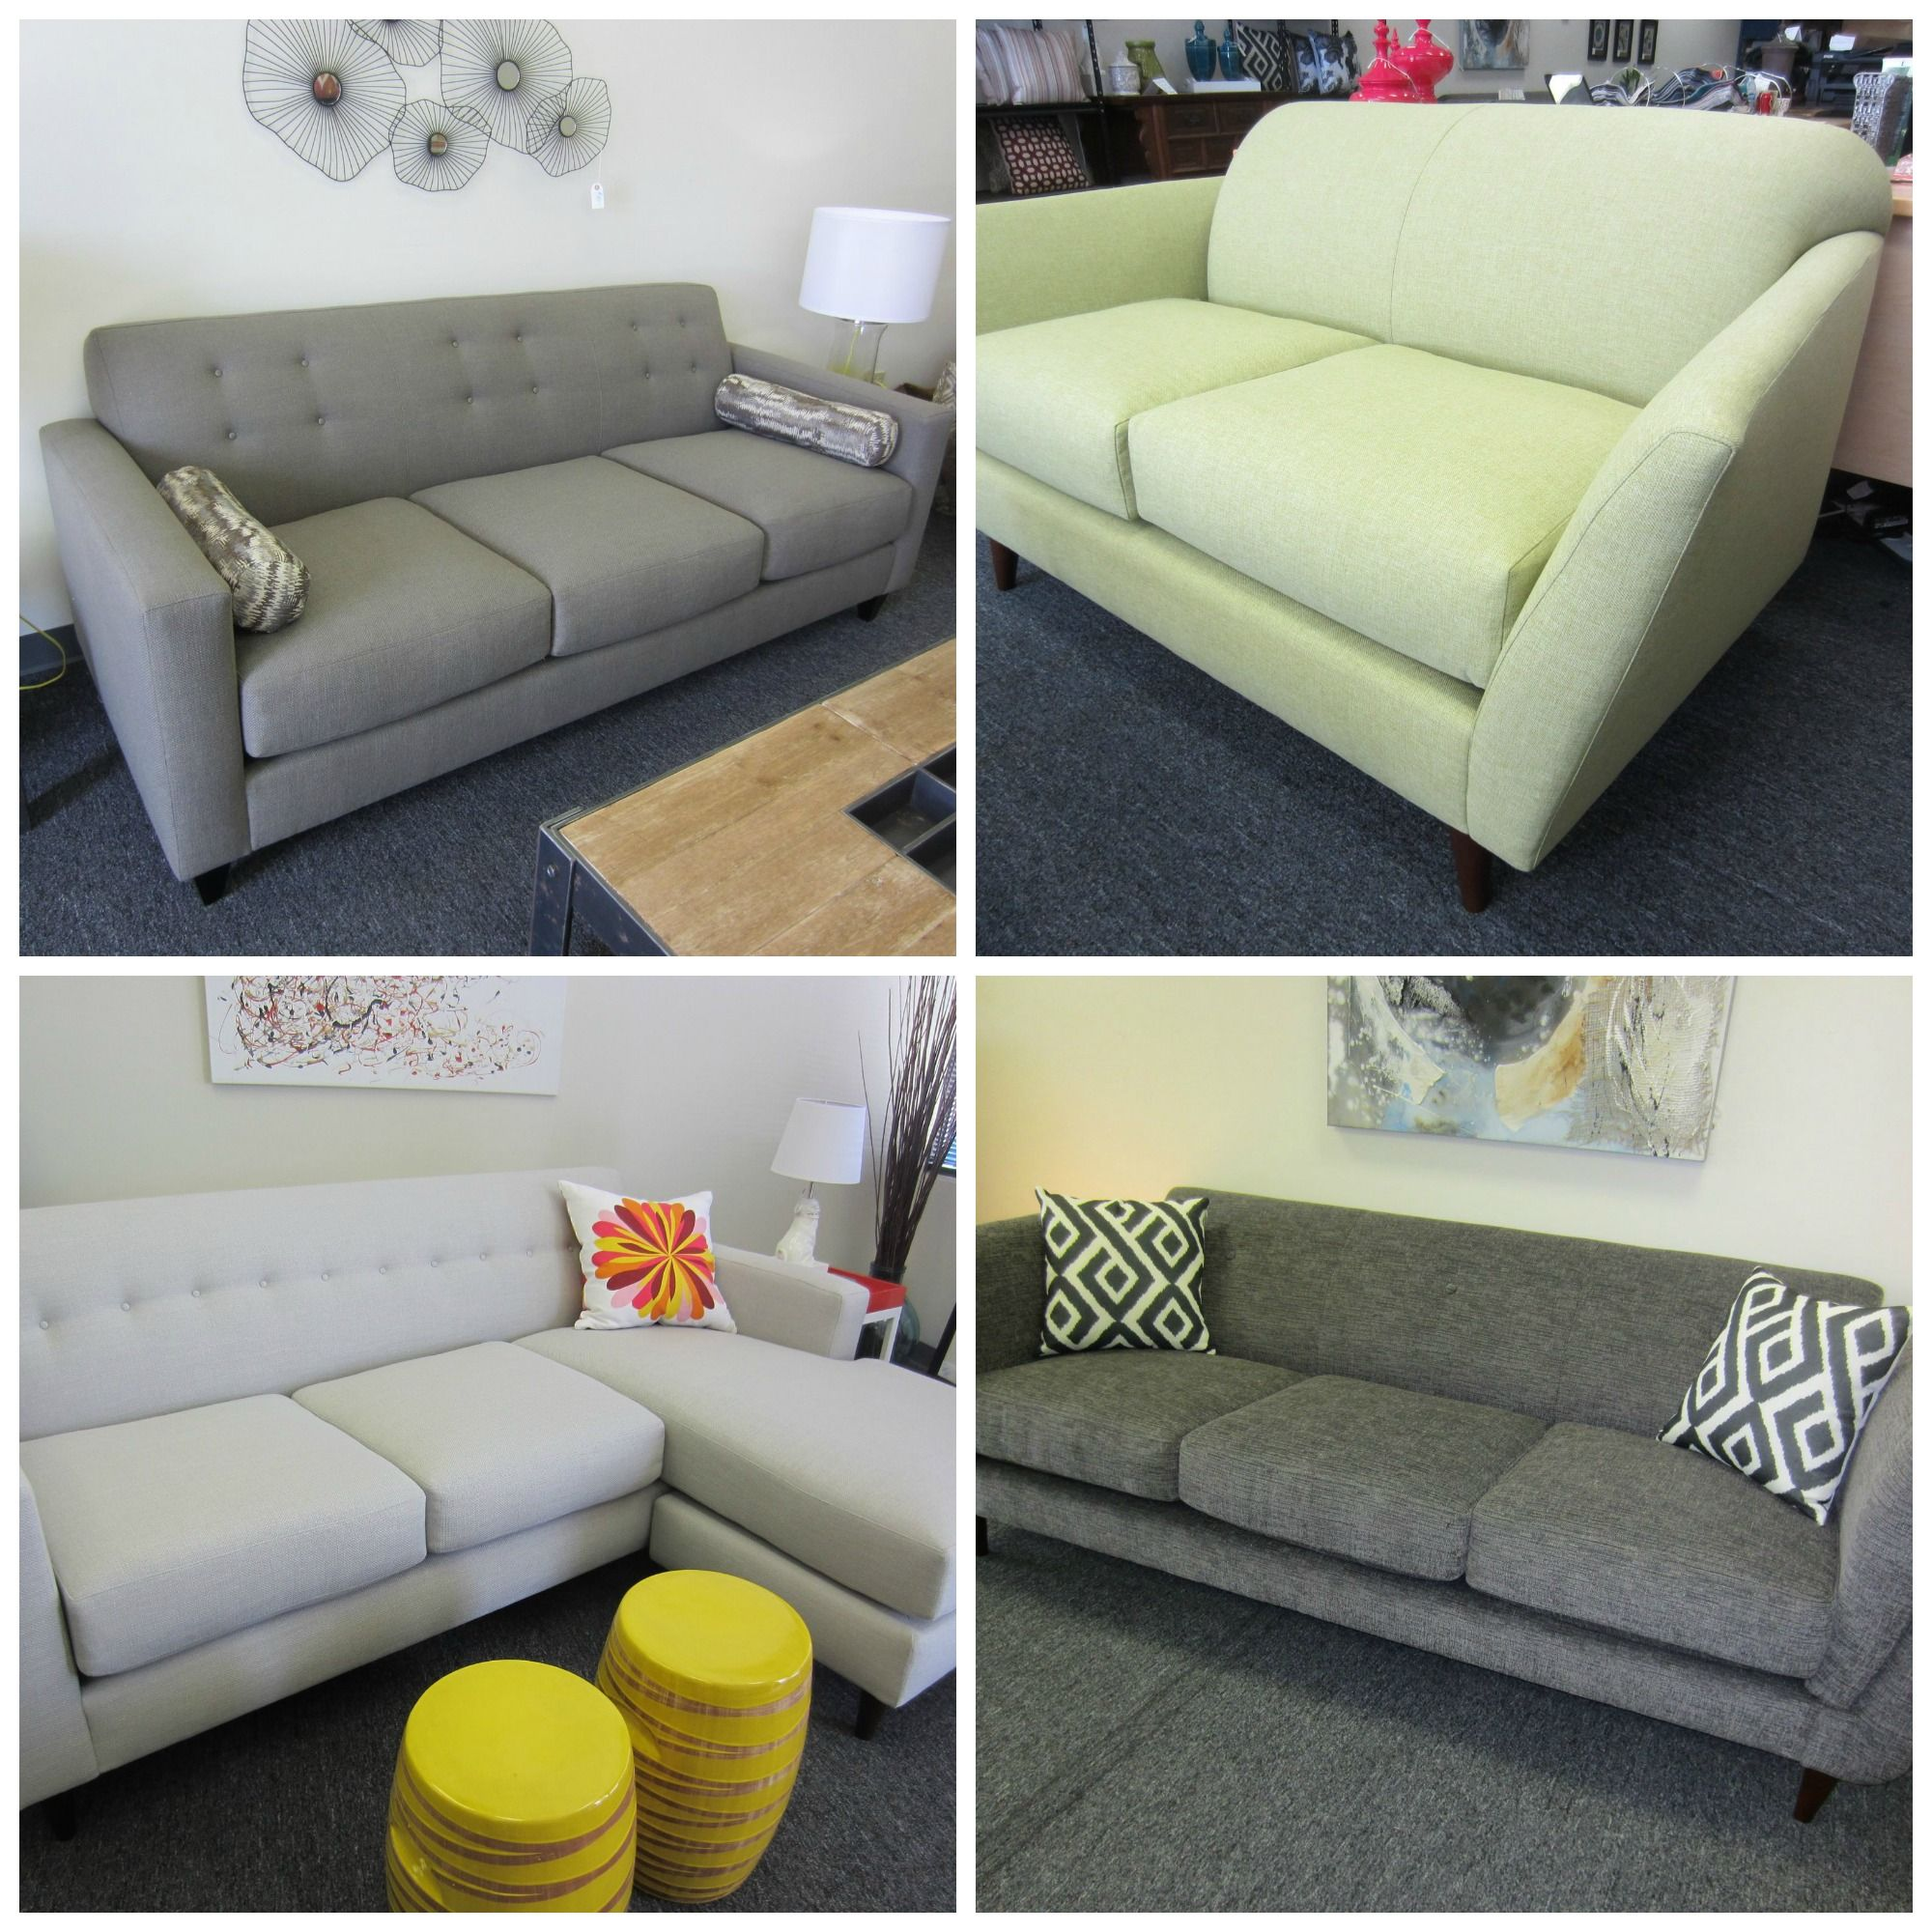 Four New Sofas Made In The USA With Certified Sustainable Materials By Huntington  Industries: Harper